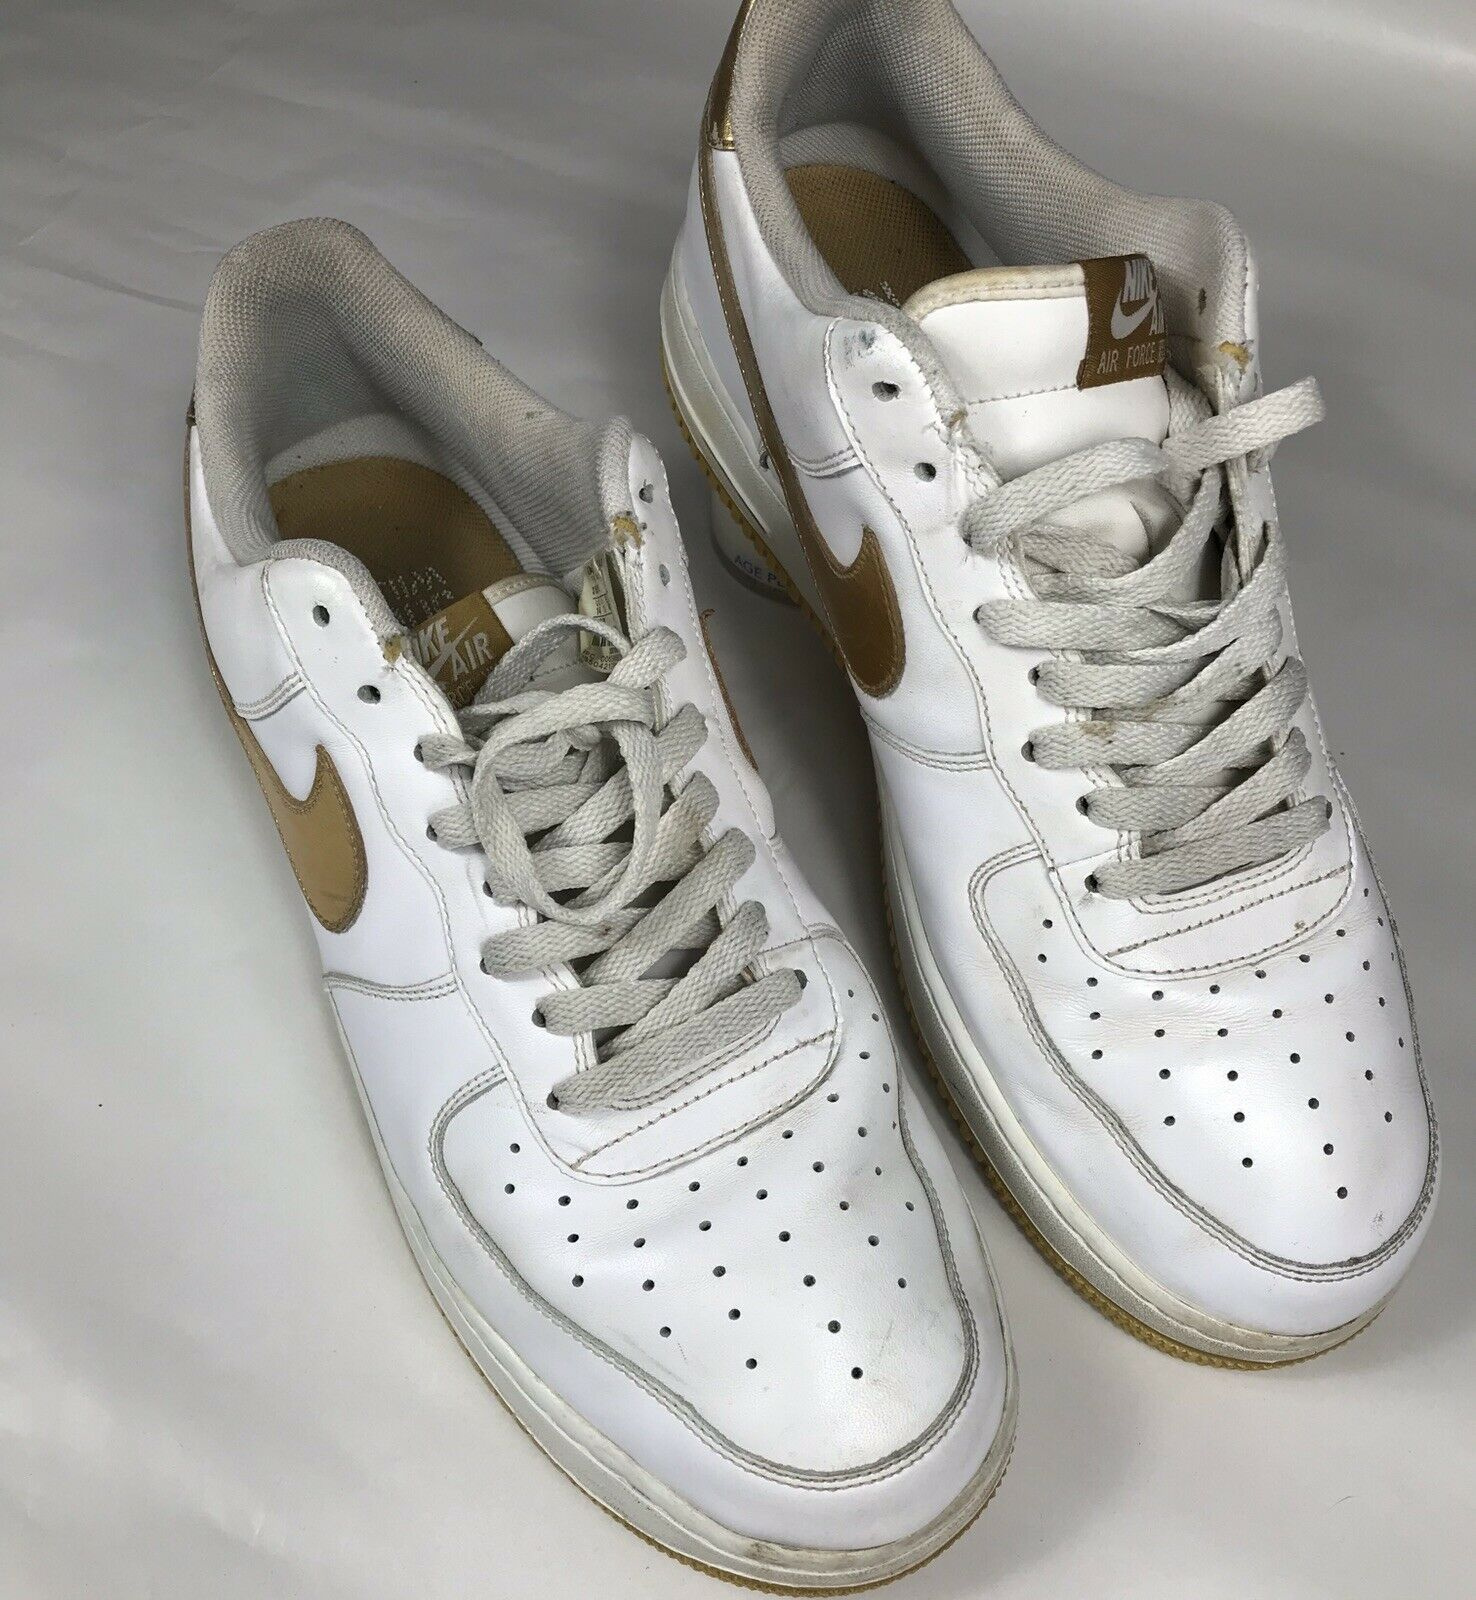 Nike Air Force 1- size 14 US  Metallic gold   White 315092-171  2006 shoes